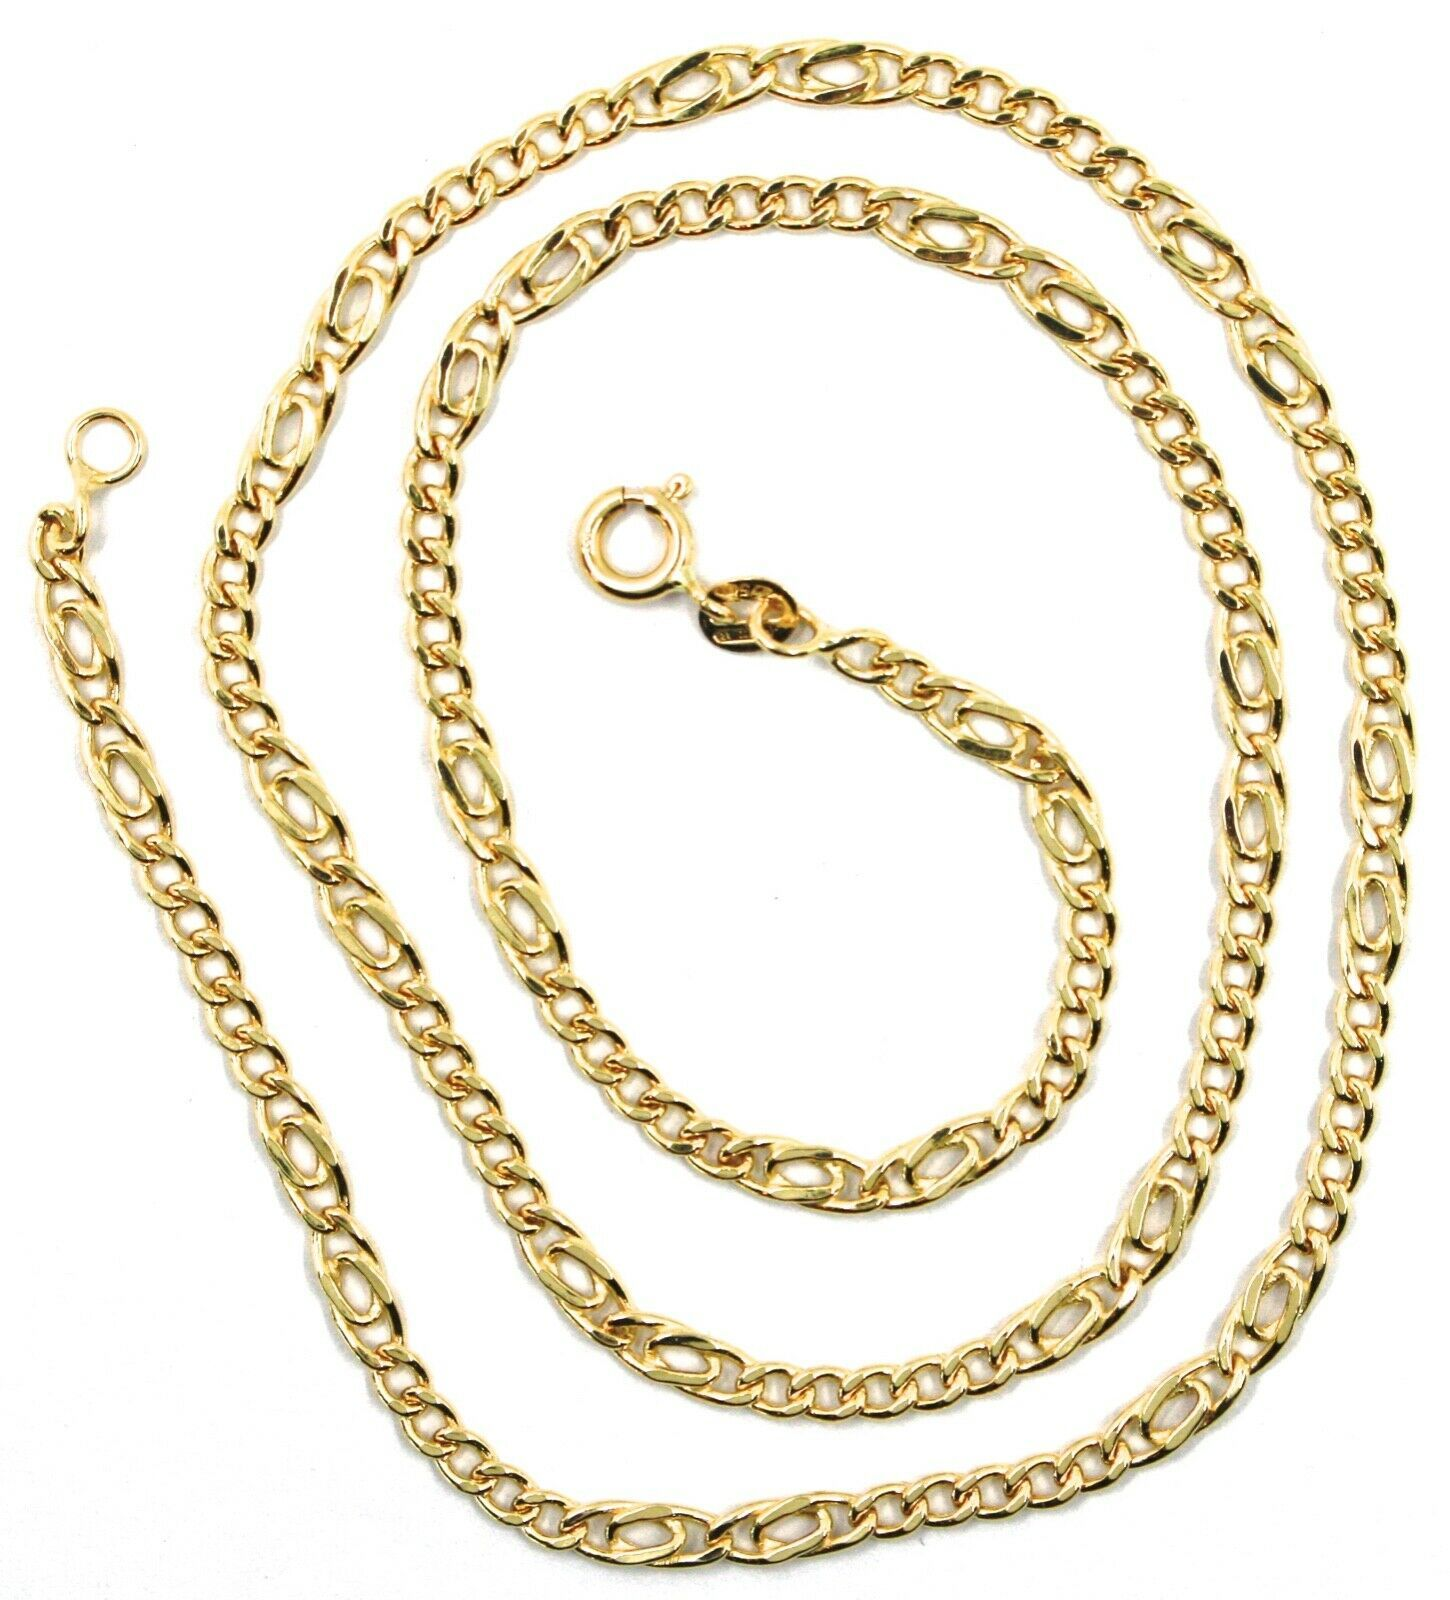 18K YELLOW GOLD CHAIN 3 MM, 20 INCHES, ALTERNATE 5 GOURMETTE, 2 TIGER EYE LINKS image 3